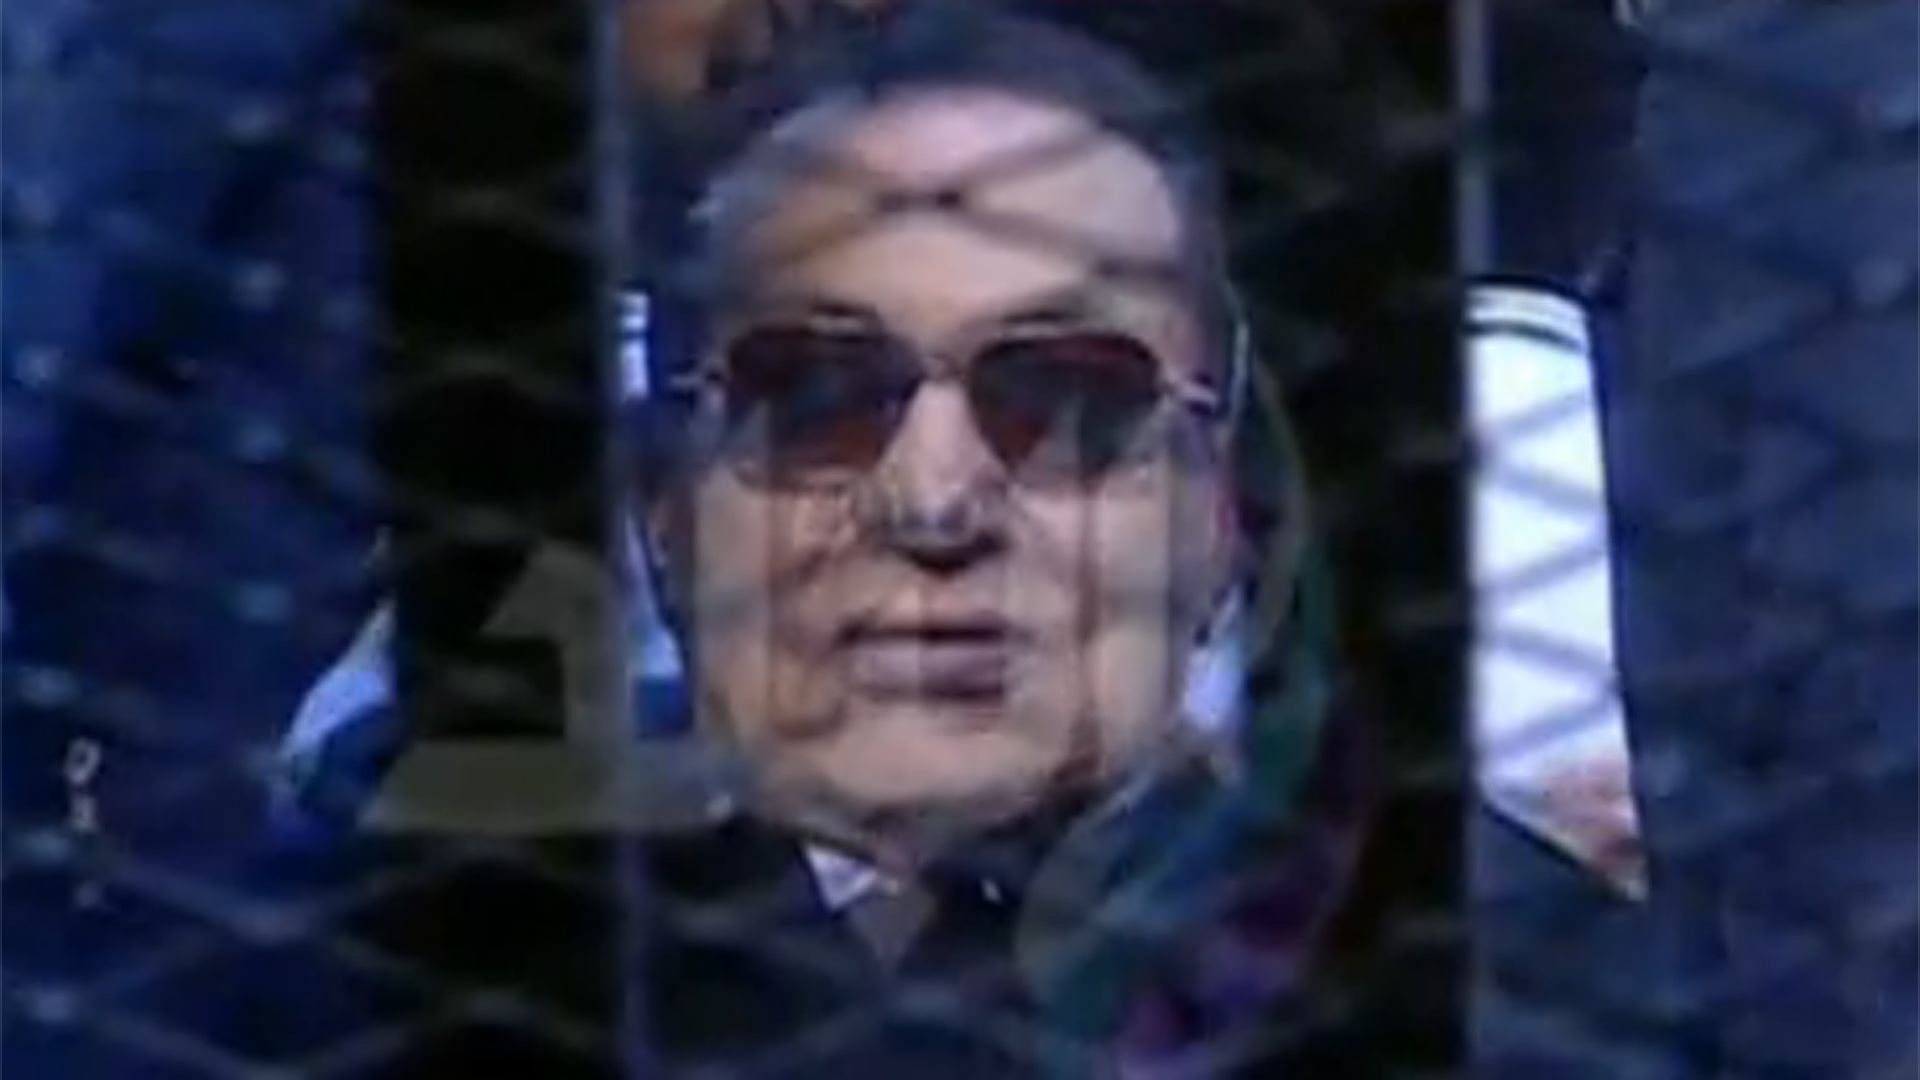 One Dead, Several Injured After Egypt's Mubarak Cleared of Murder